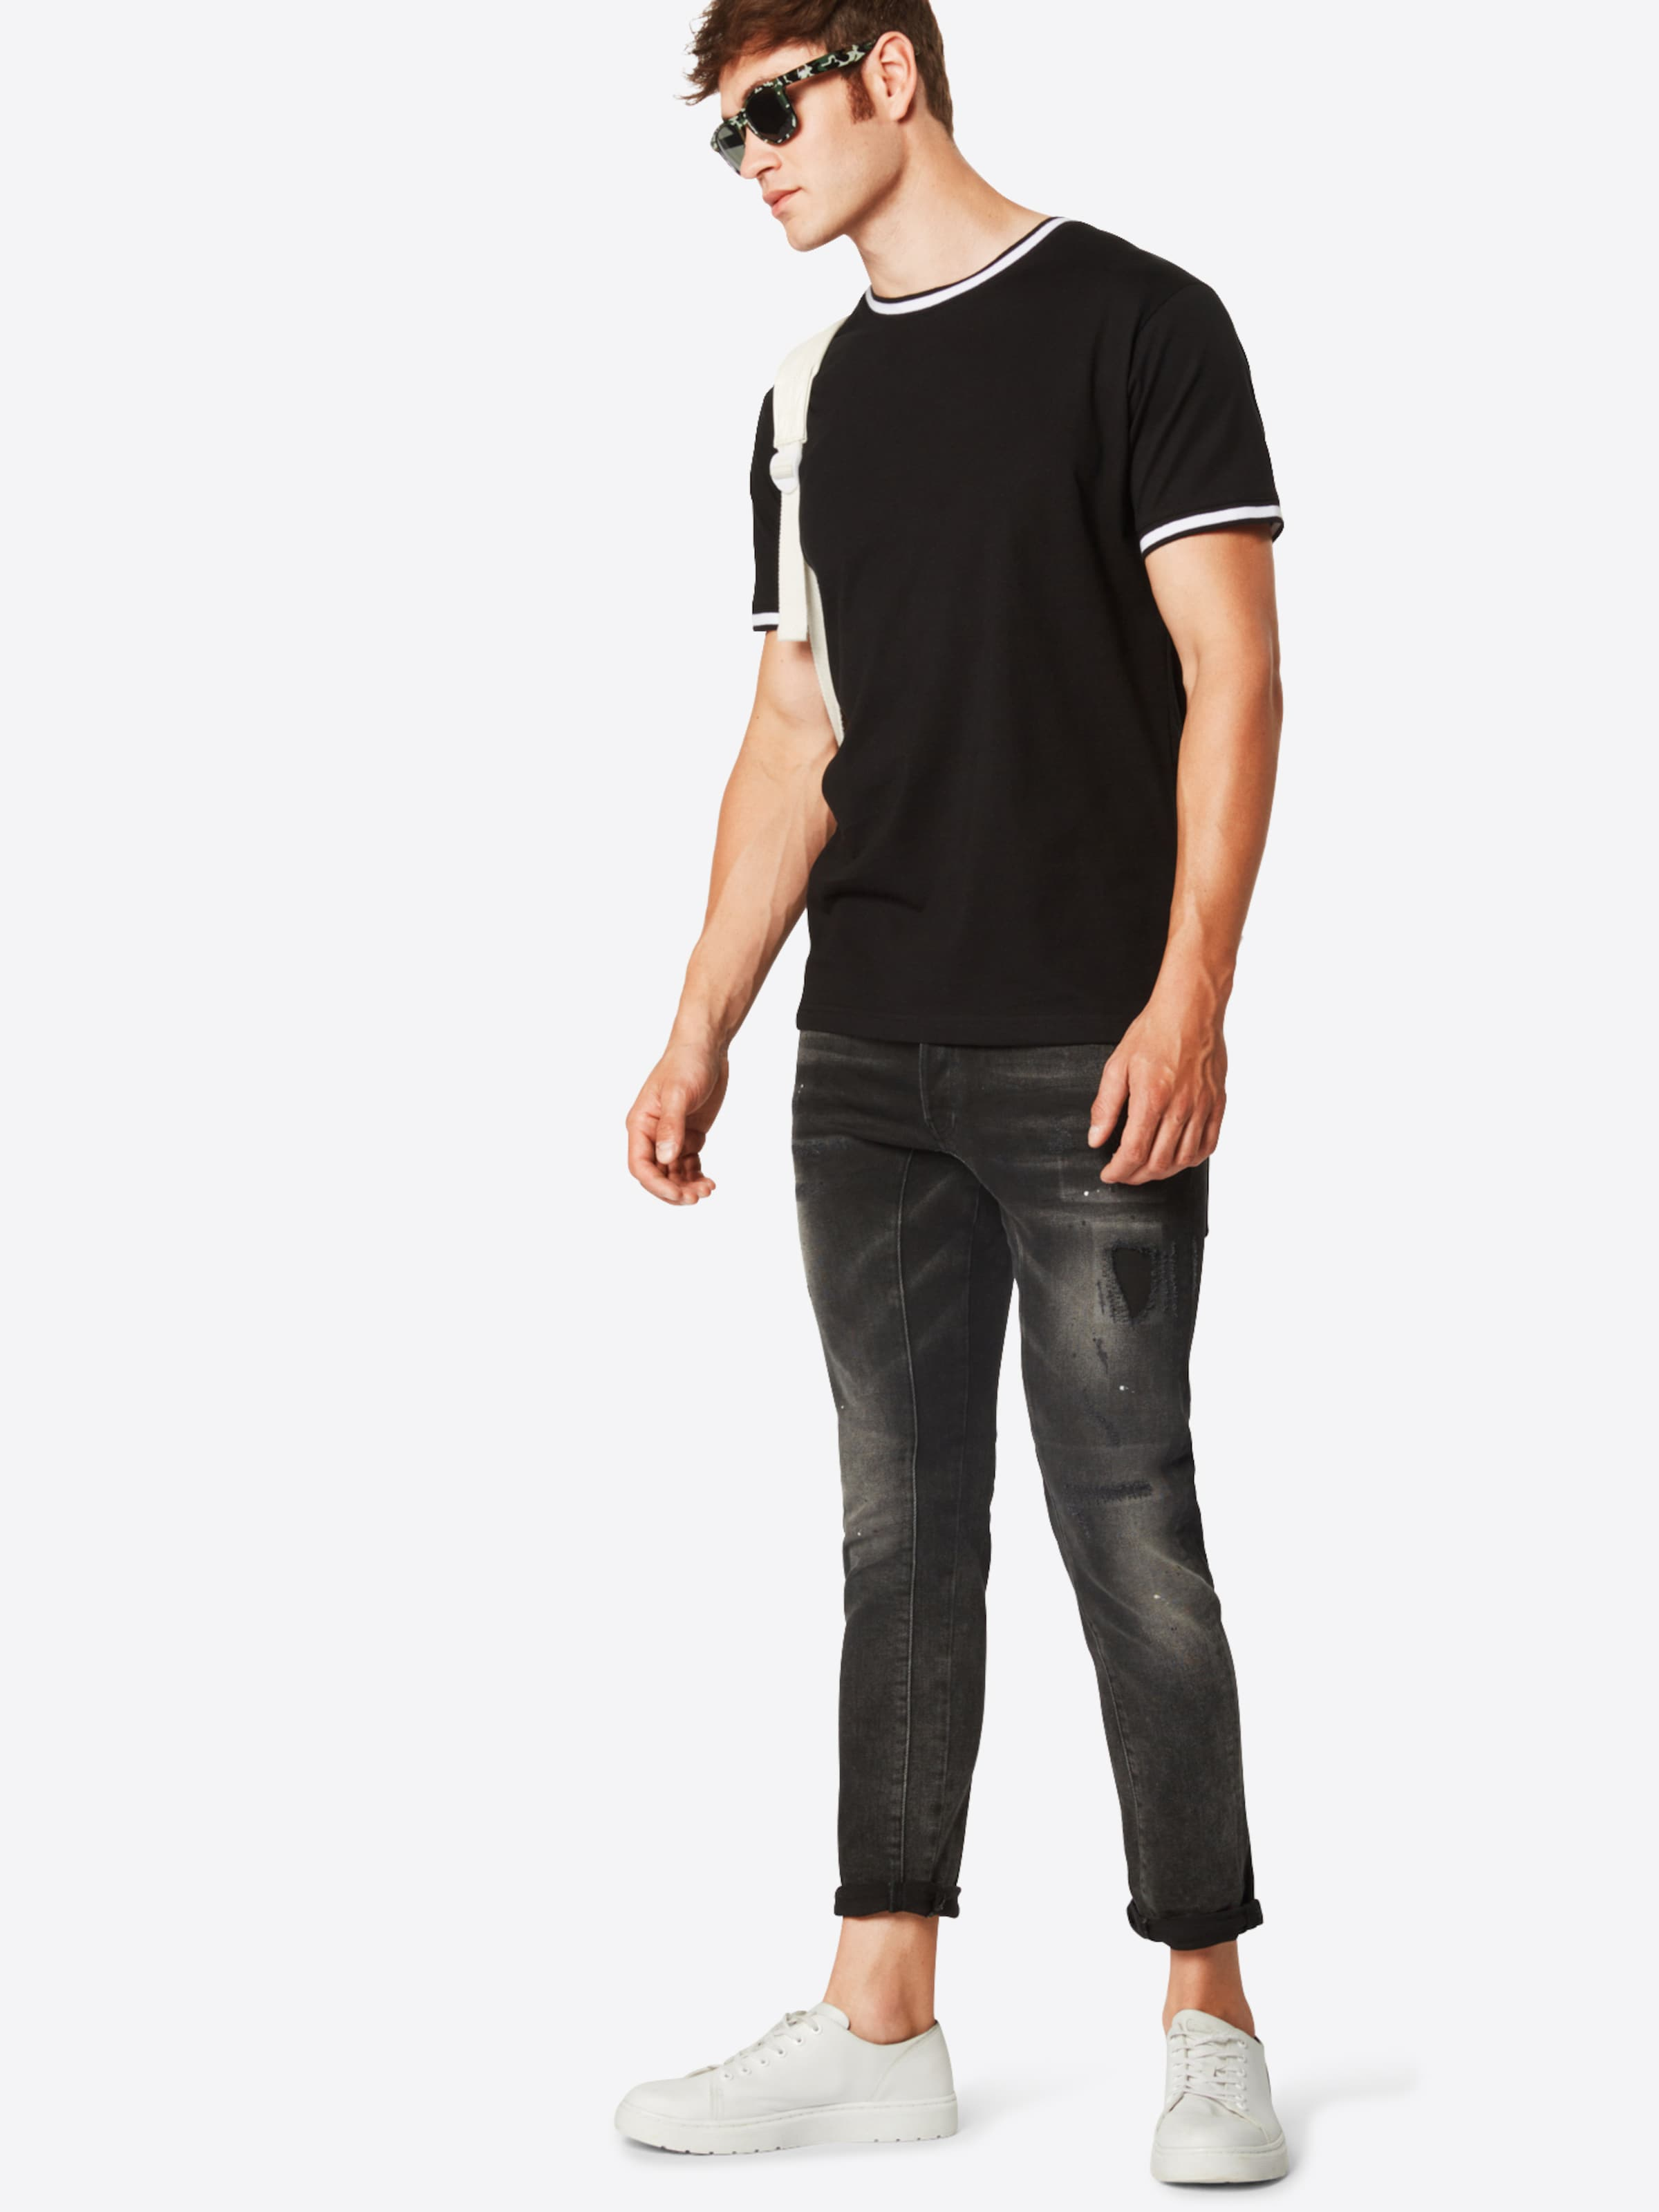 Tee' Urban Classics En T NoirBlanc 'collage shirt Pocket 4j5LRq3A